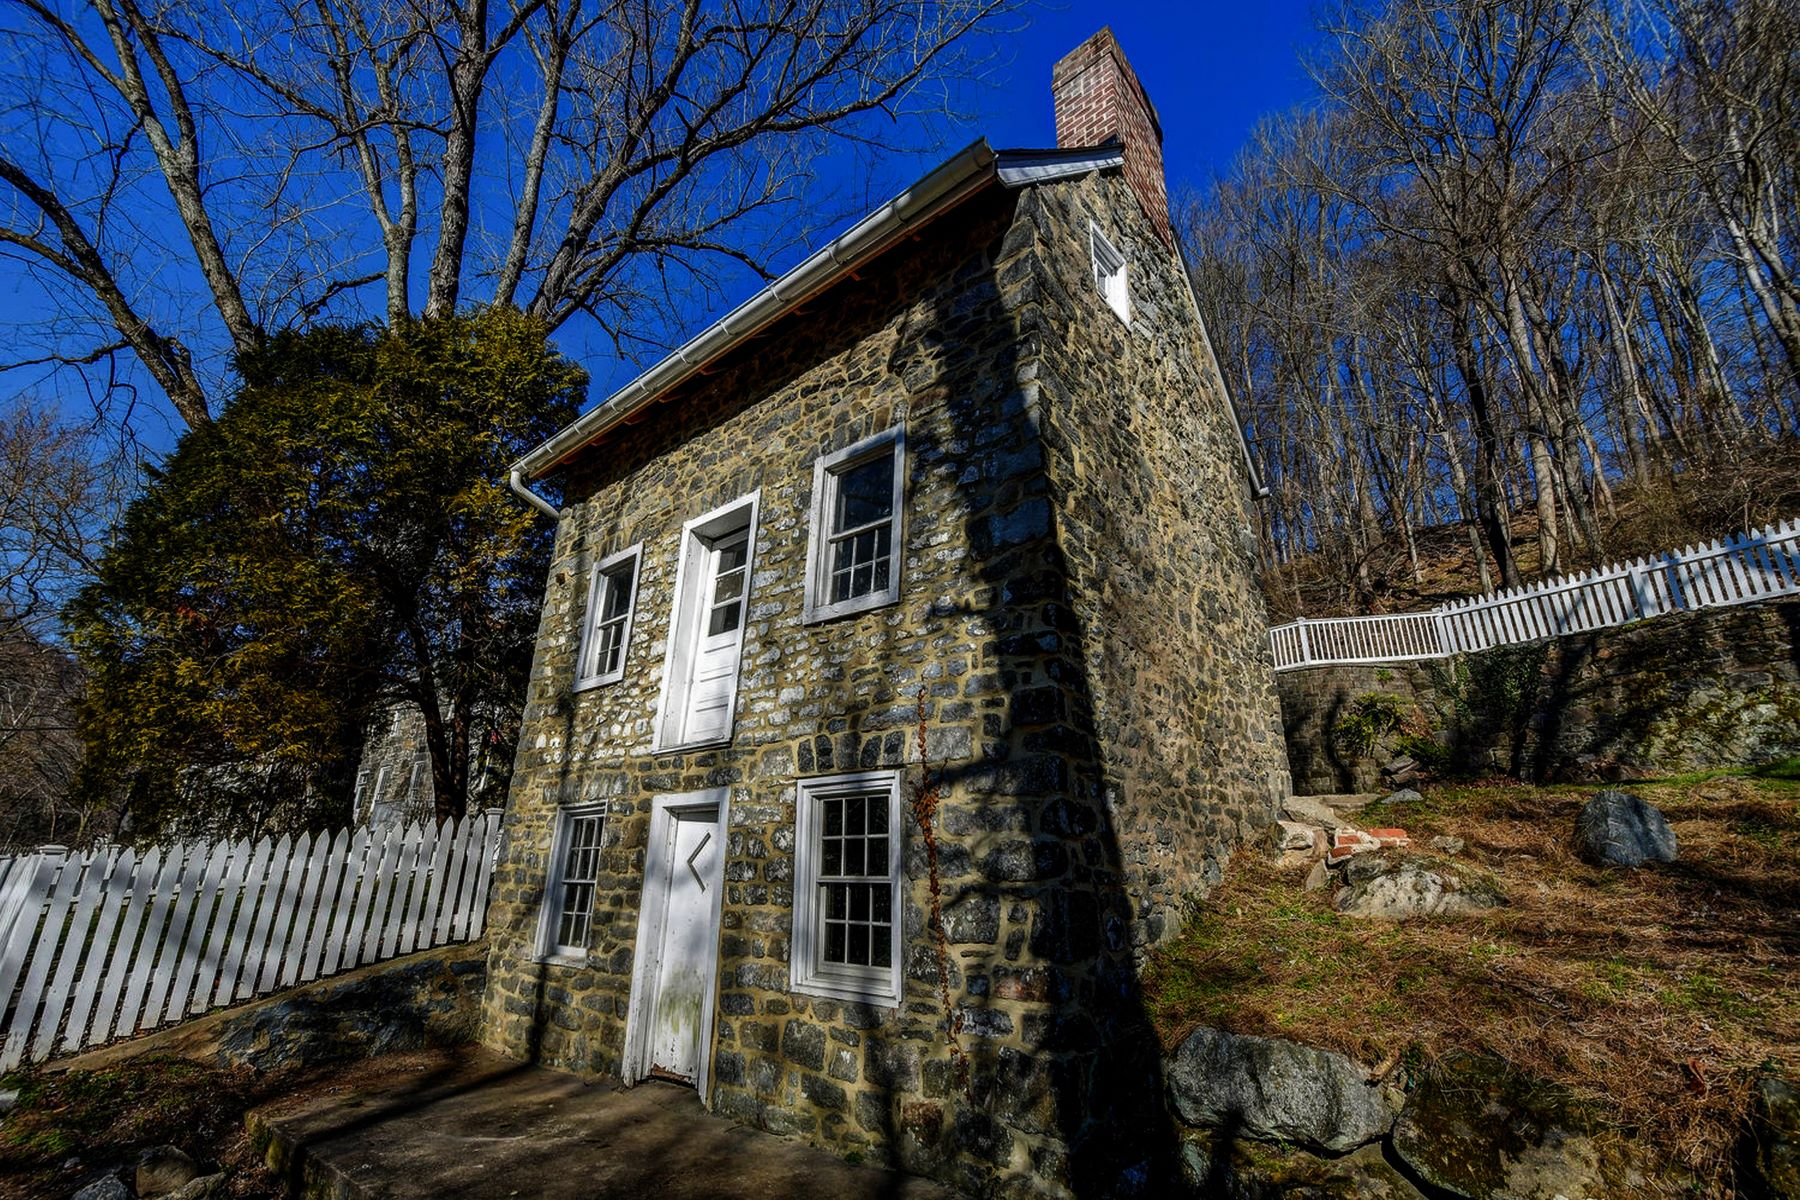 Single Family Homes for Sale at The Cottage on Granite Hill 1215 Oella Avenue Ellicott City, Maryland 21043 United States